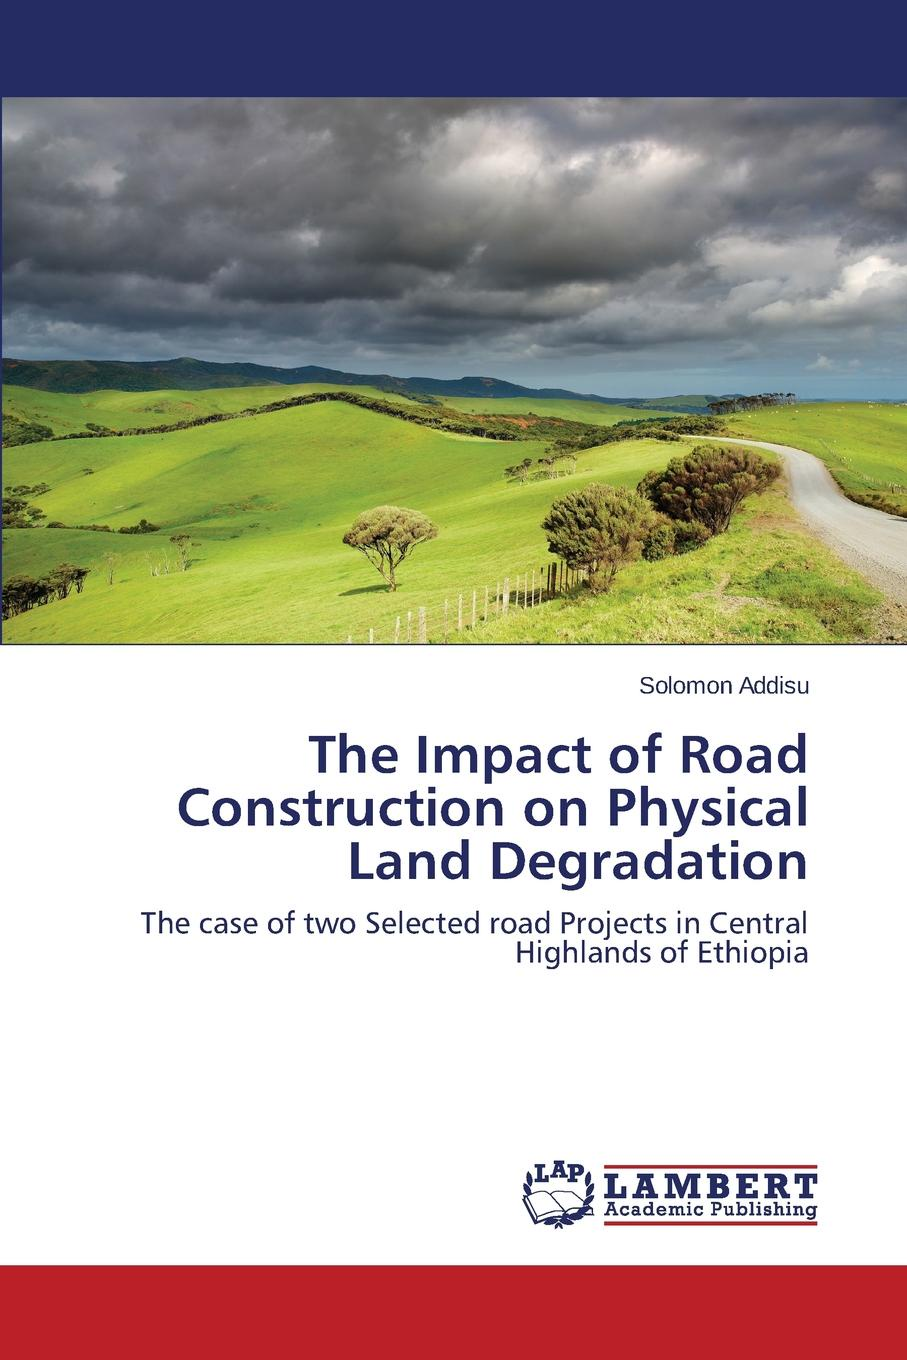 Addisu Solomon The Impact of Road Construction on Physical Land Degradation malcolm kemp extreme events robust portfolio construction in the presence of fat tails isbn 9780470976791